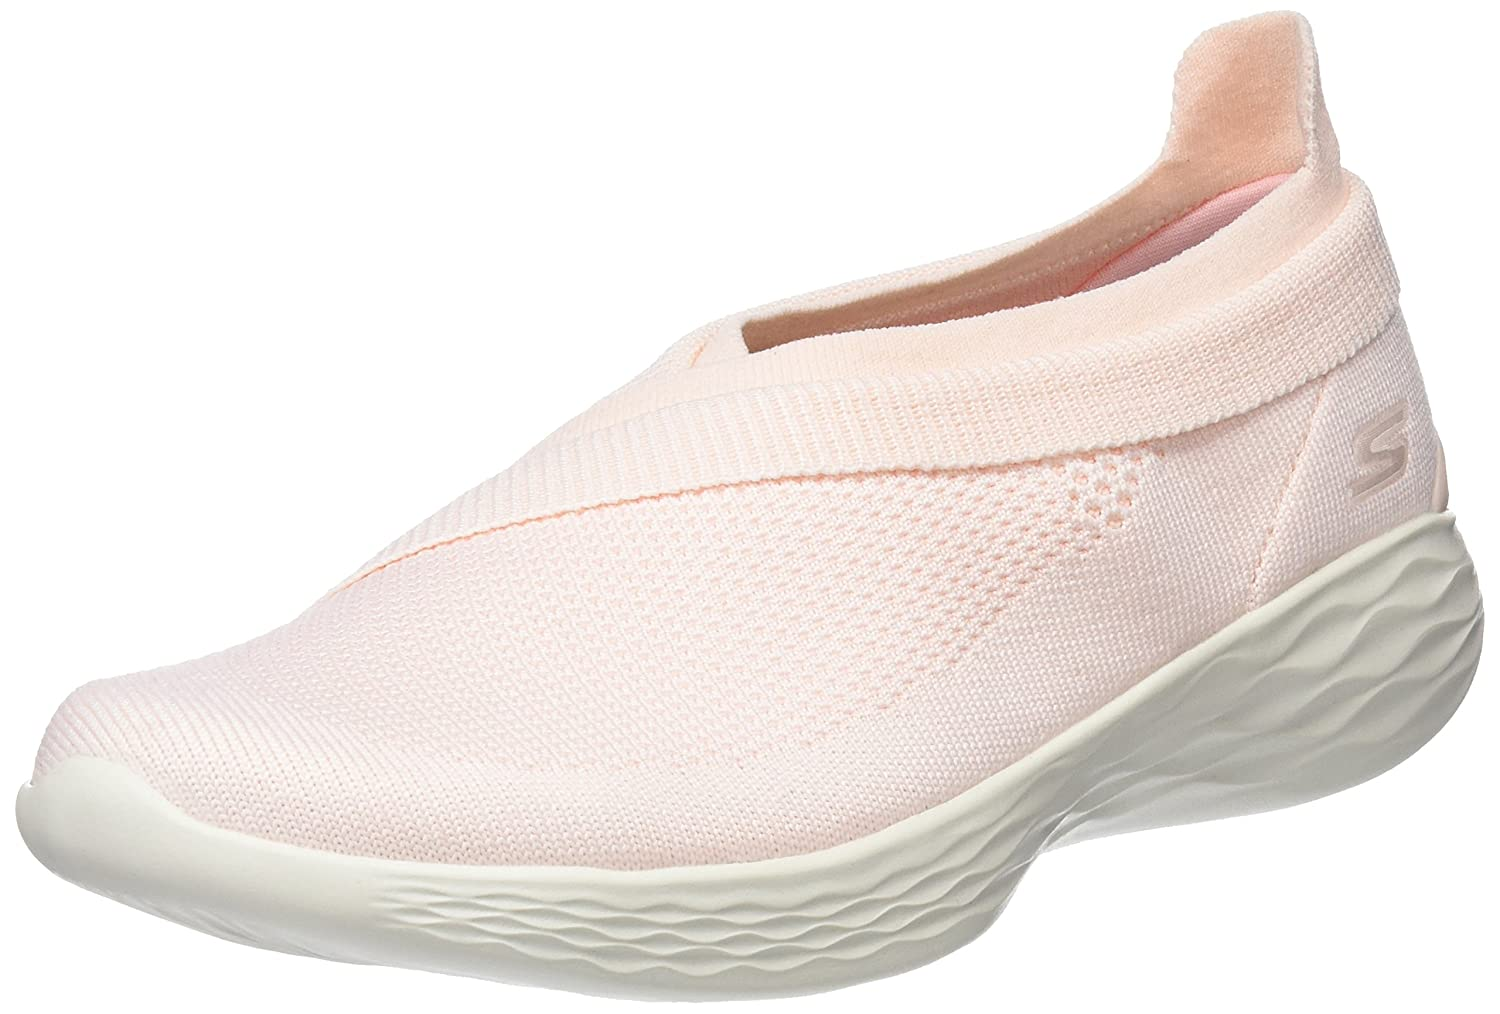 Skechers You - Luxe, 9637 Luxe, Baskets B0758D251H Enfiler Femme Rose (Pink) d0ec800 - boatplans.space